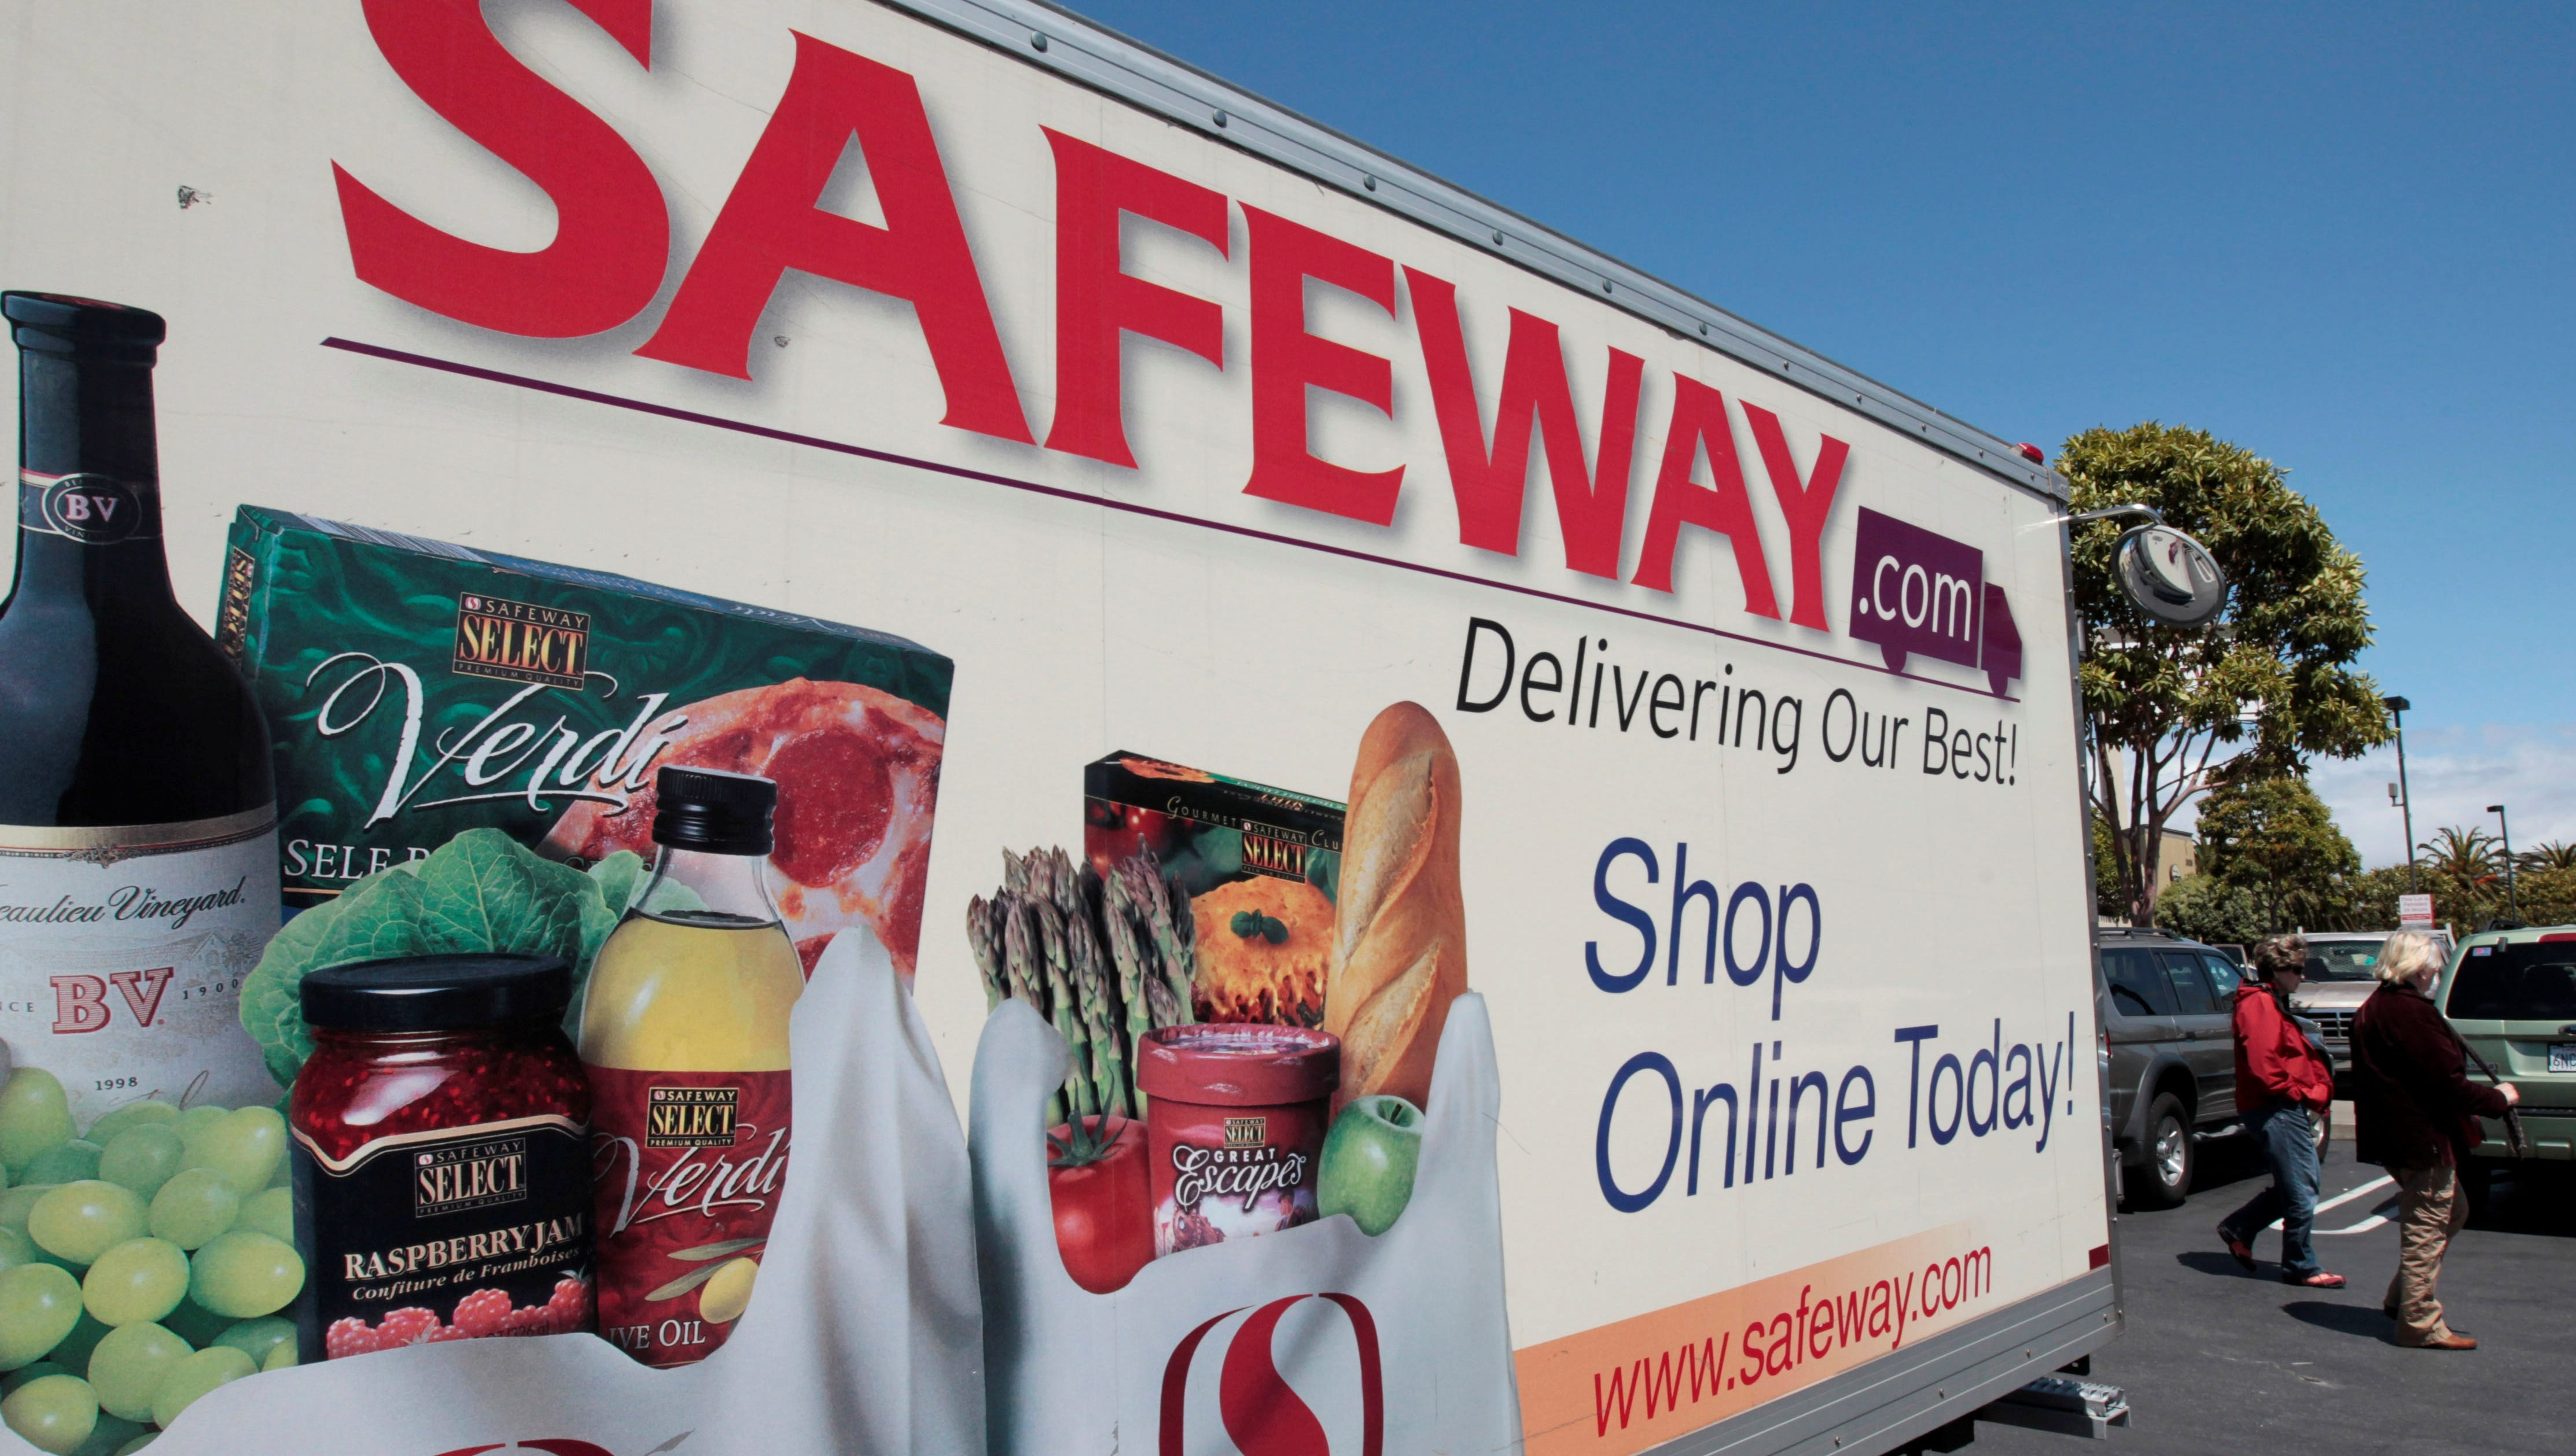 Investment Firm Cerberus To Buy Safeway For 9 Billion